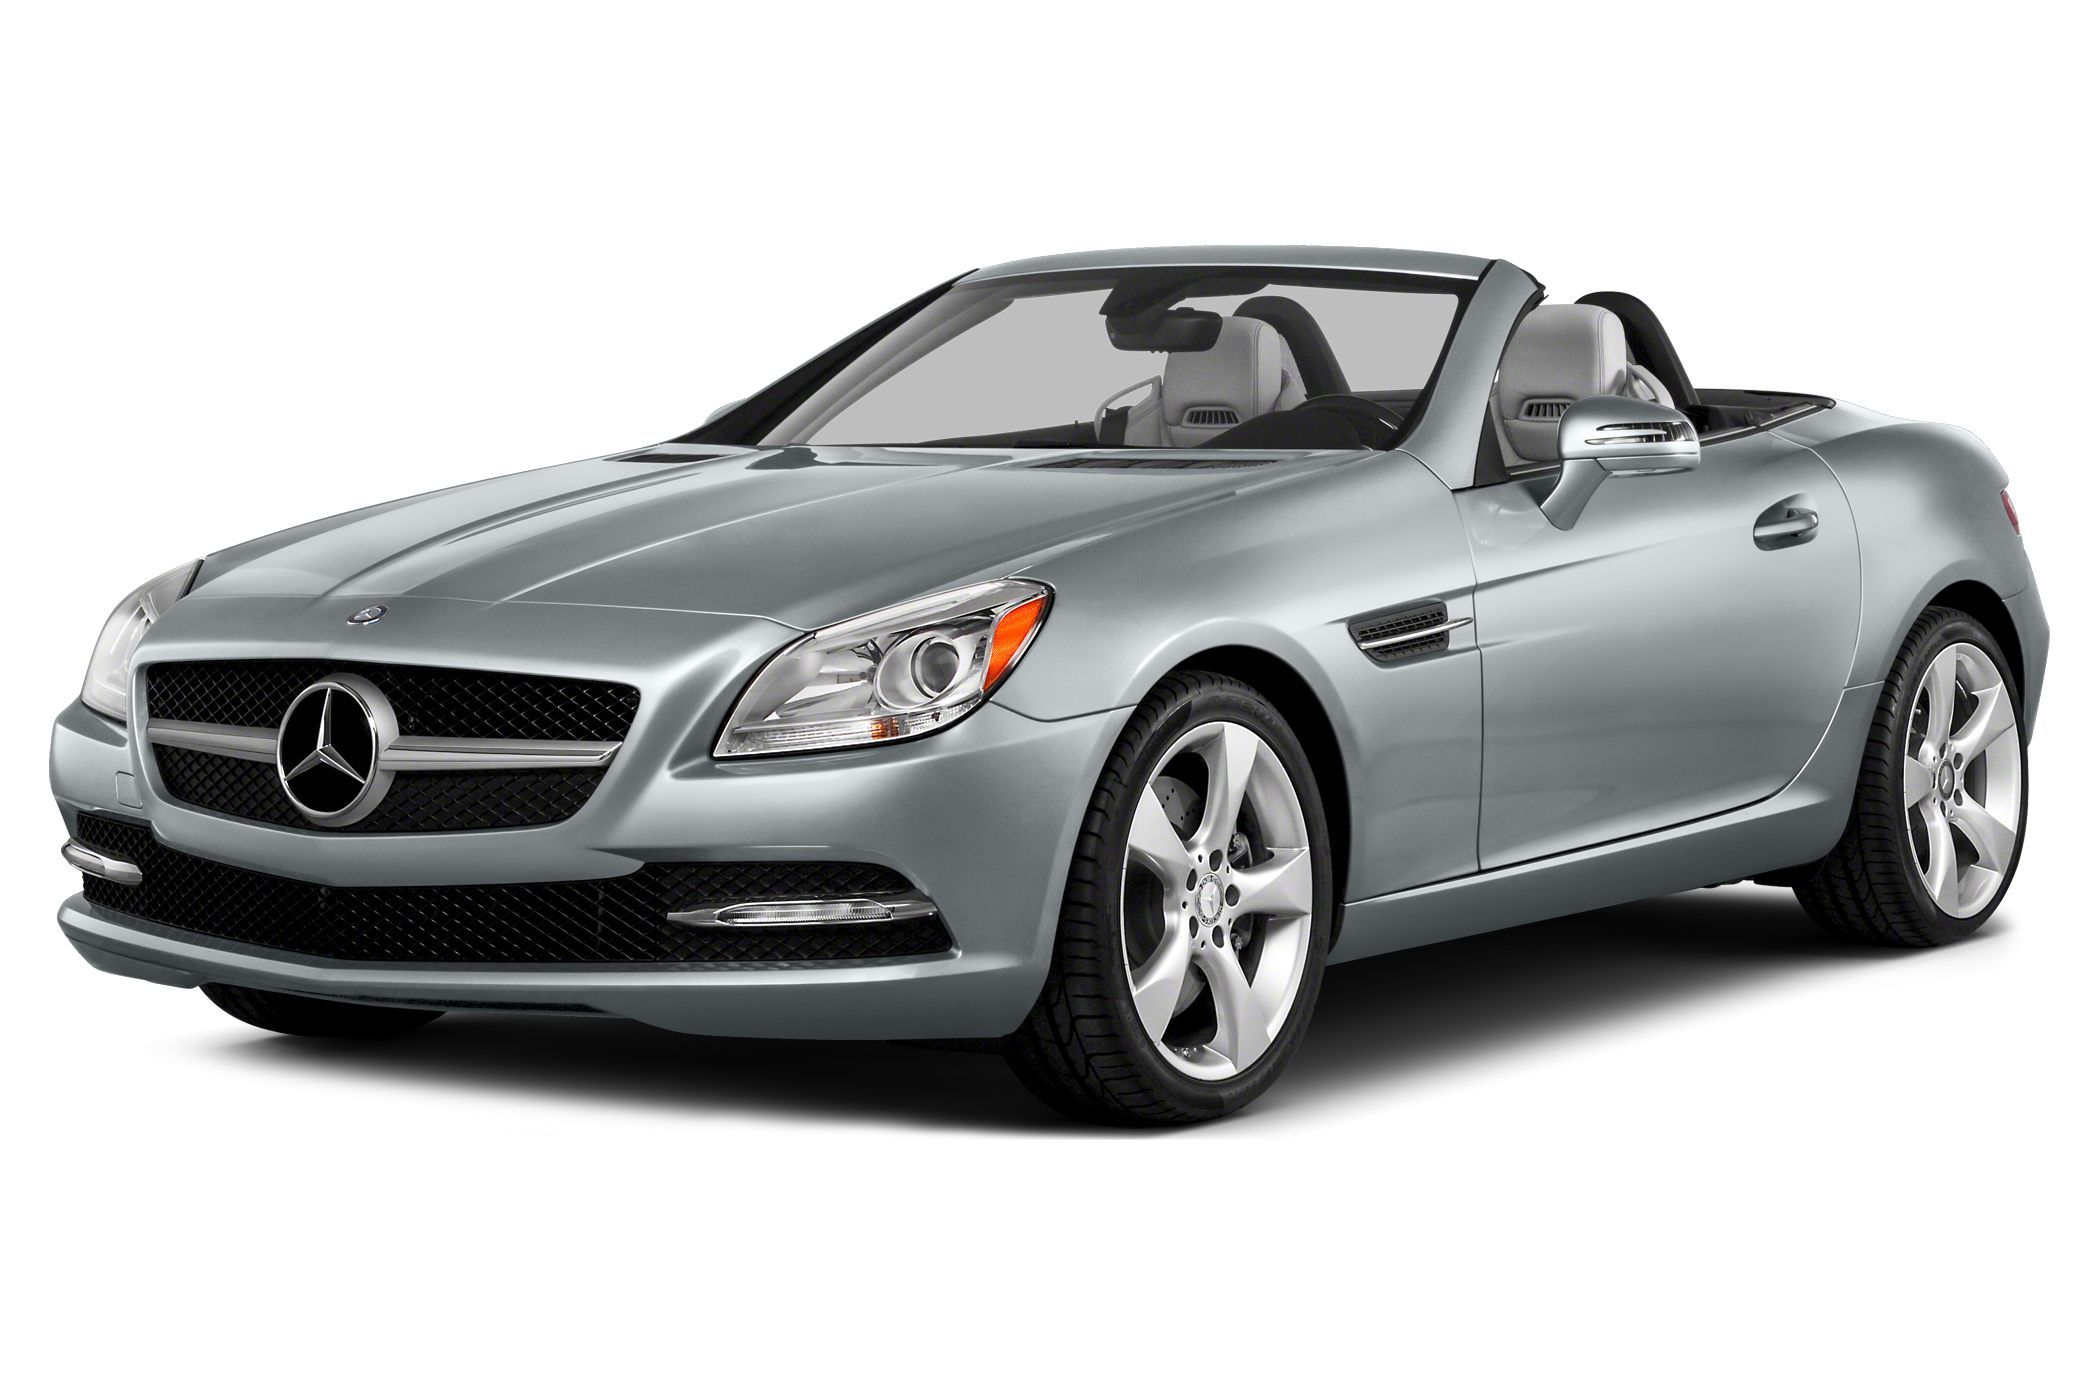 2015 mercedes benz slk250 quick spin w video for 2016 mercedes benz slk class msrp